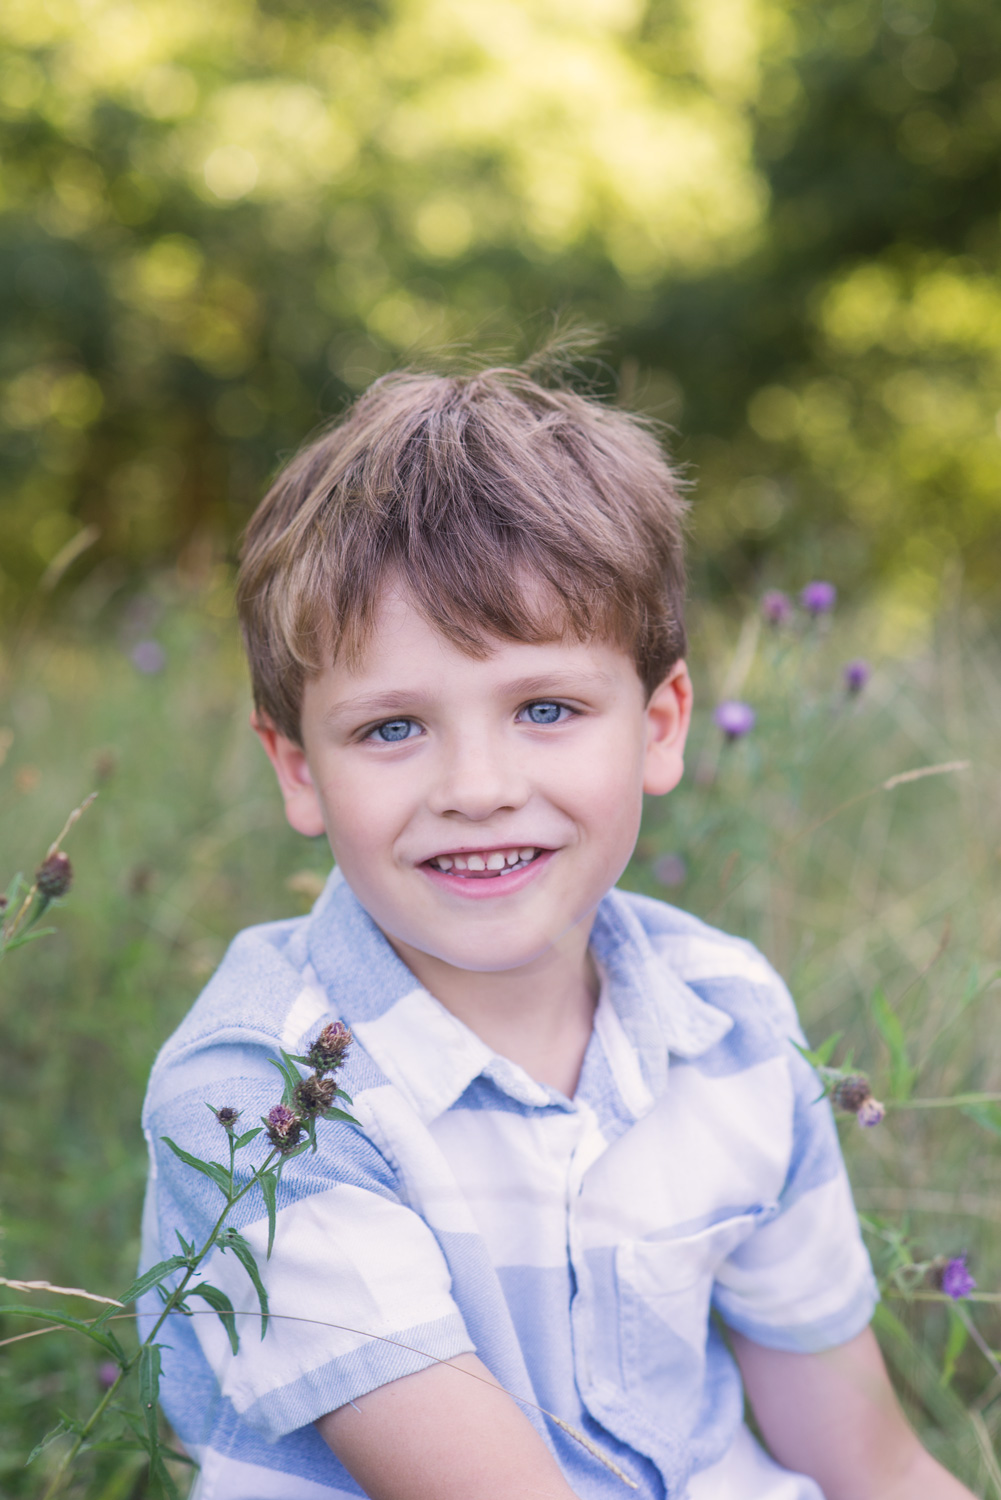 Outdoor portrait of a boy.